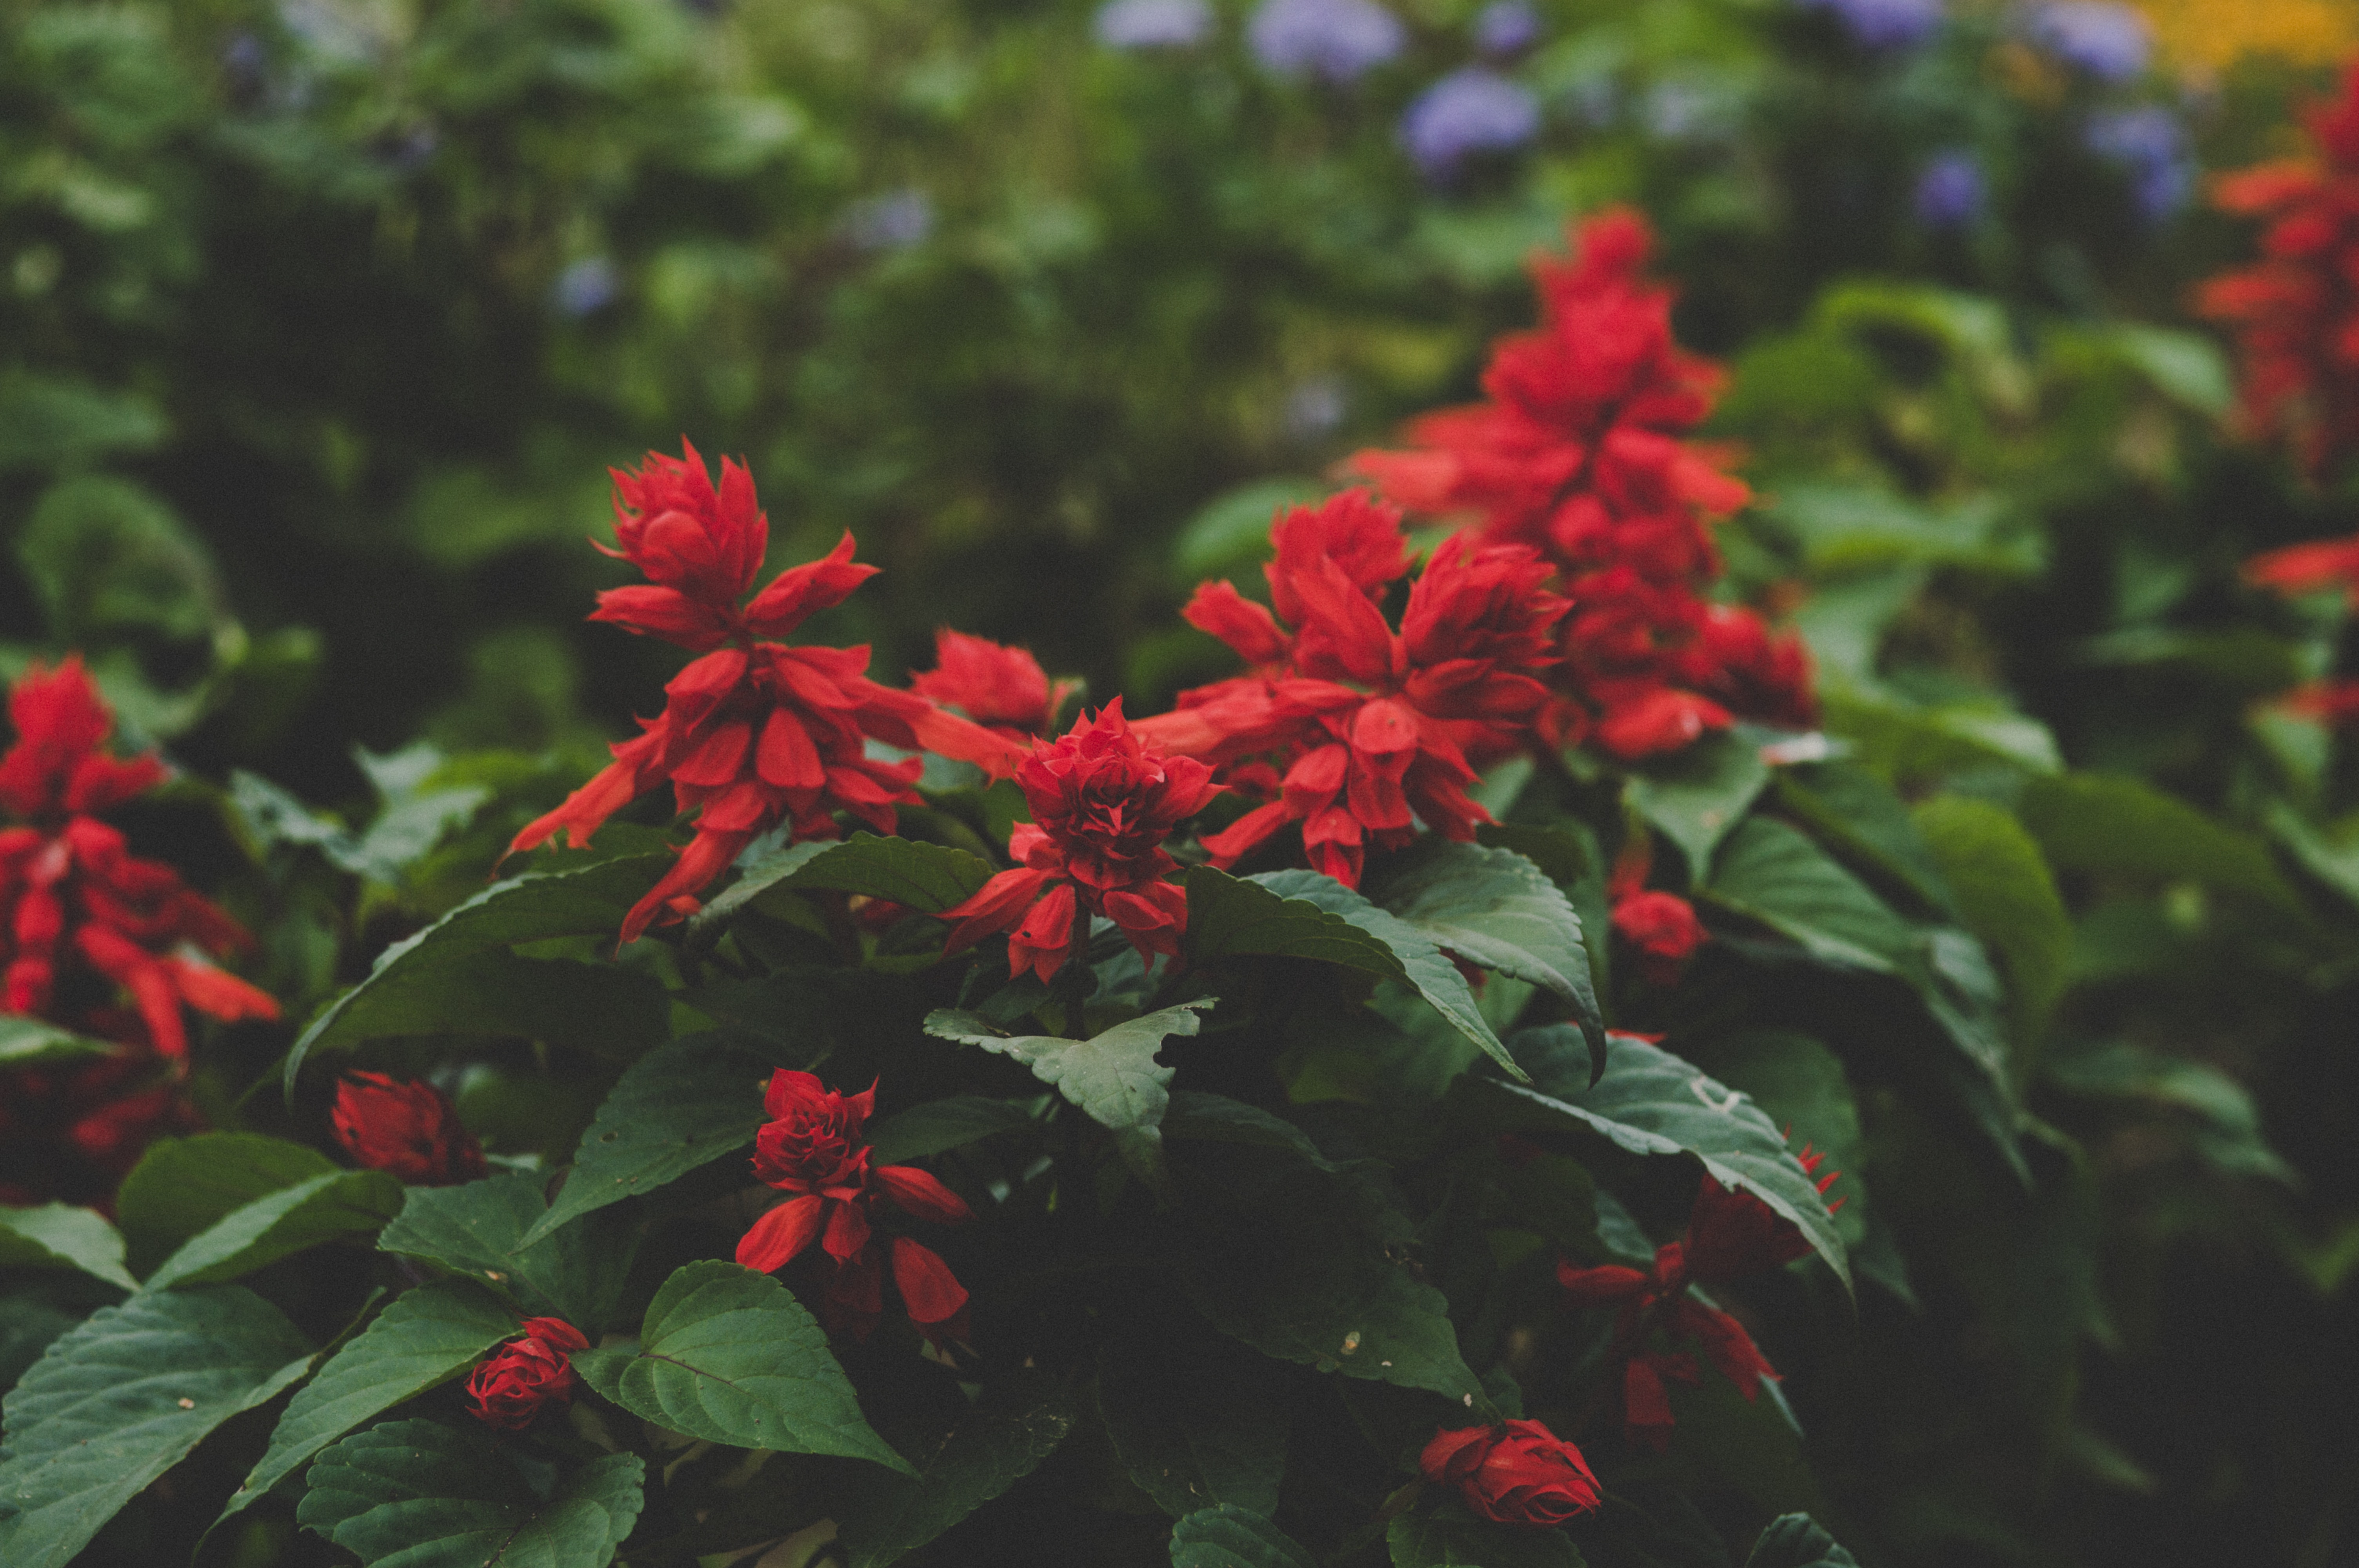 Red Flowerss 183 Free Stock Photo